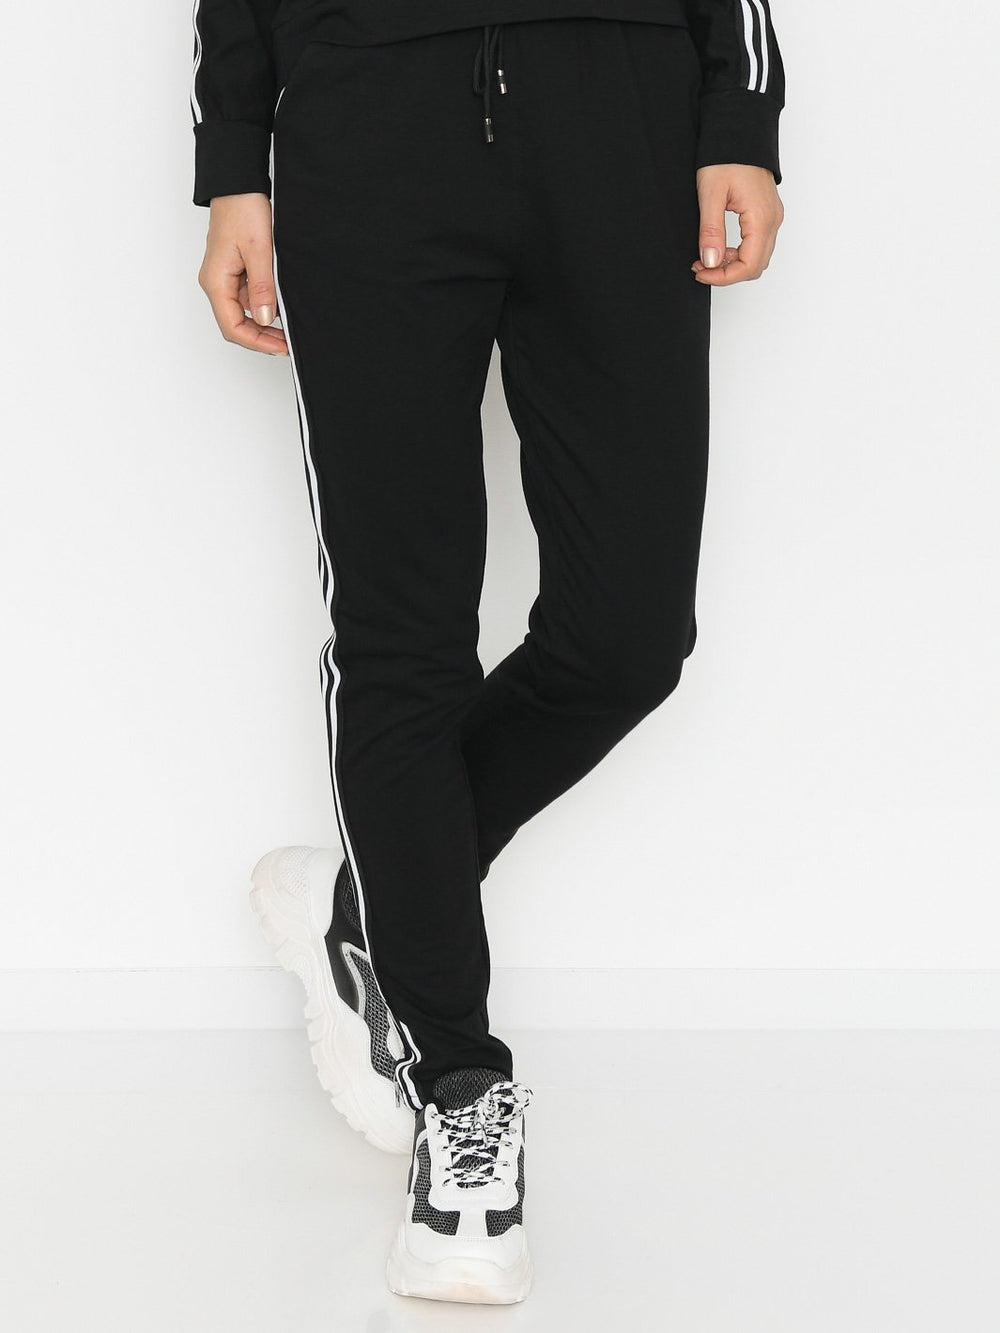 Sidney sweatpants black - Online-Mode